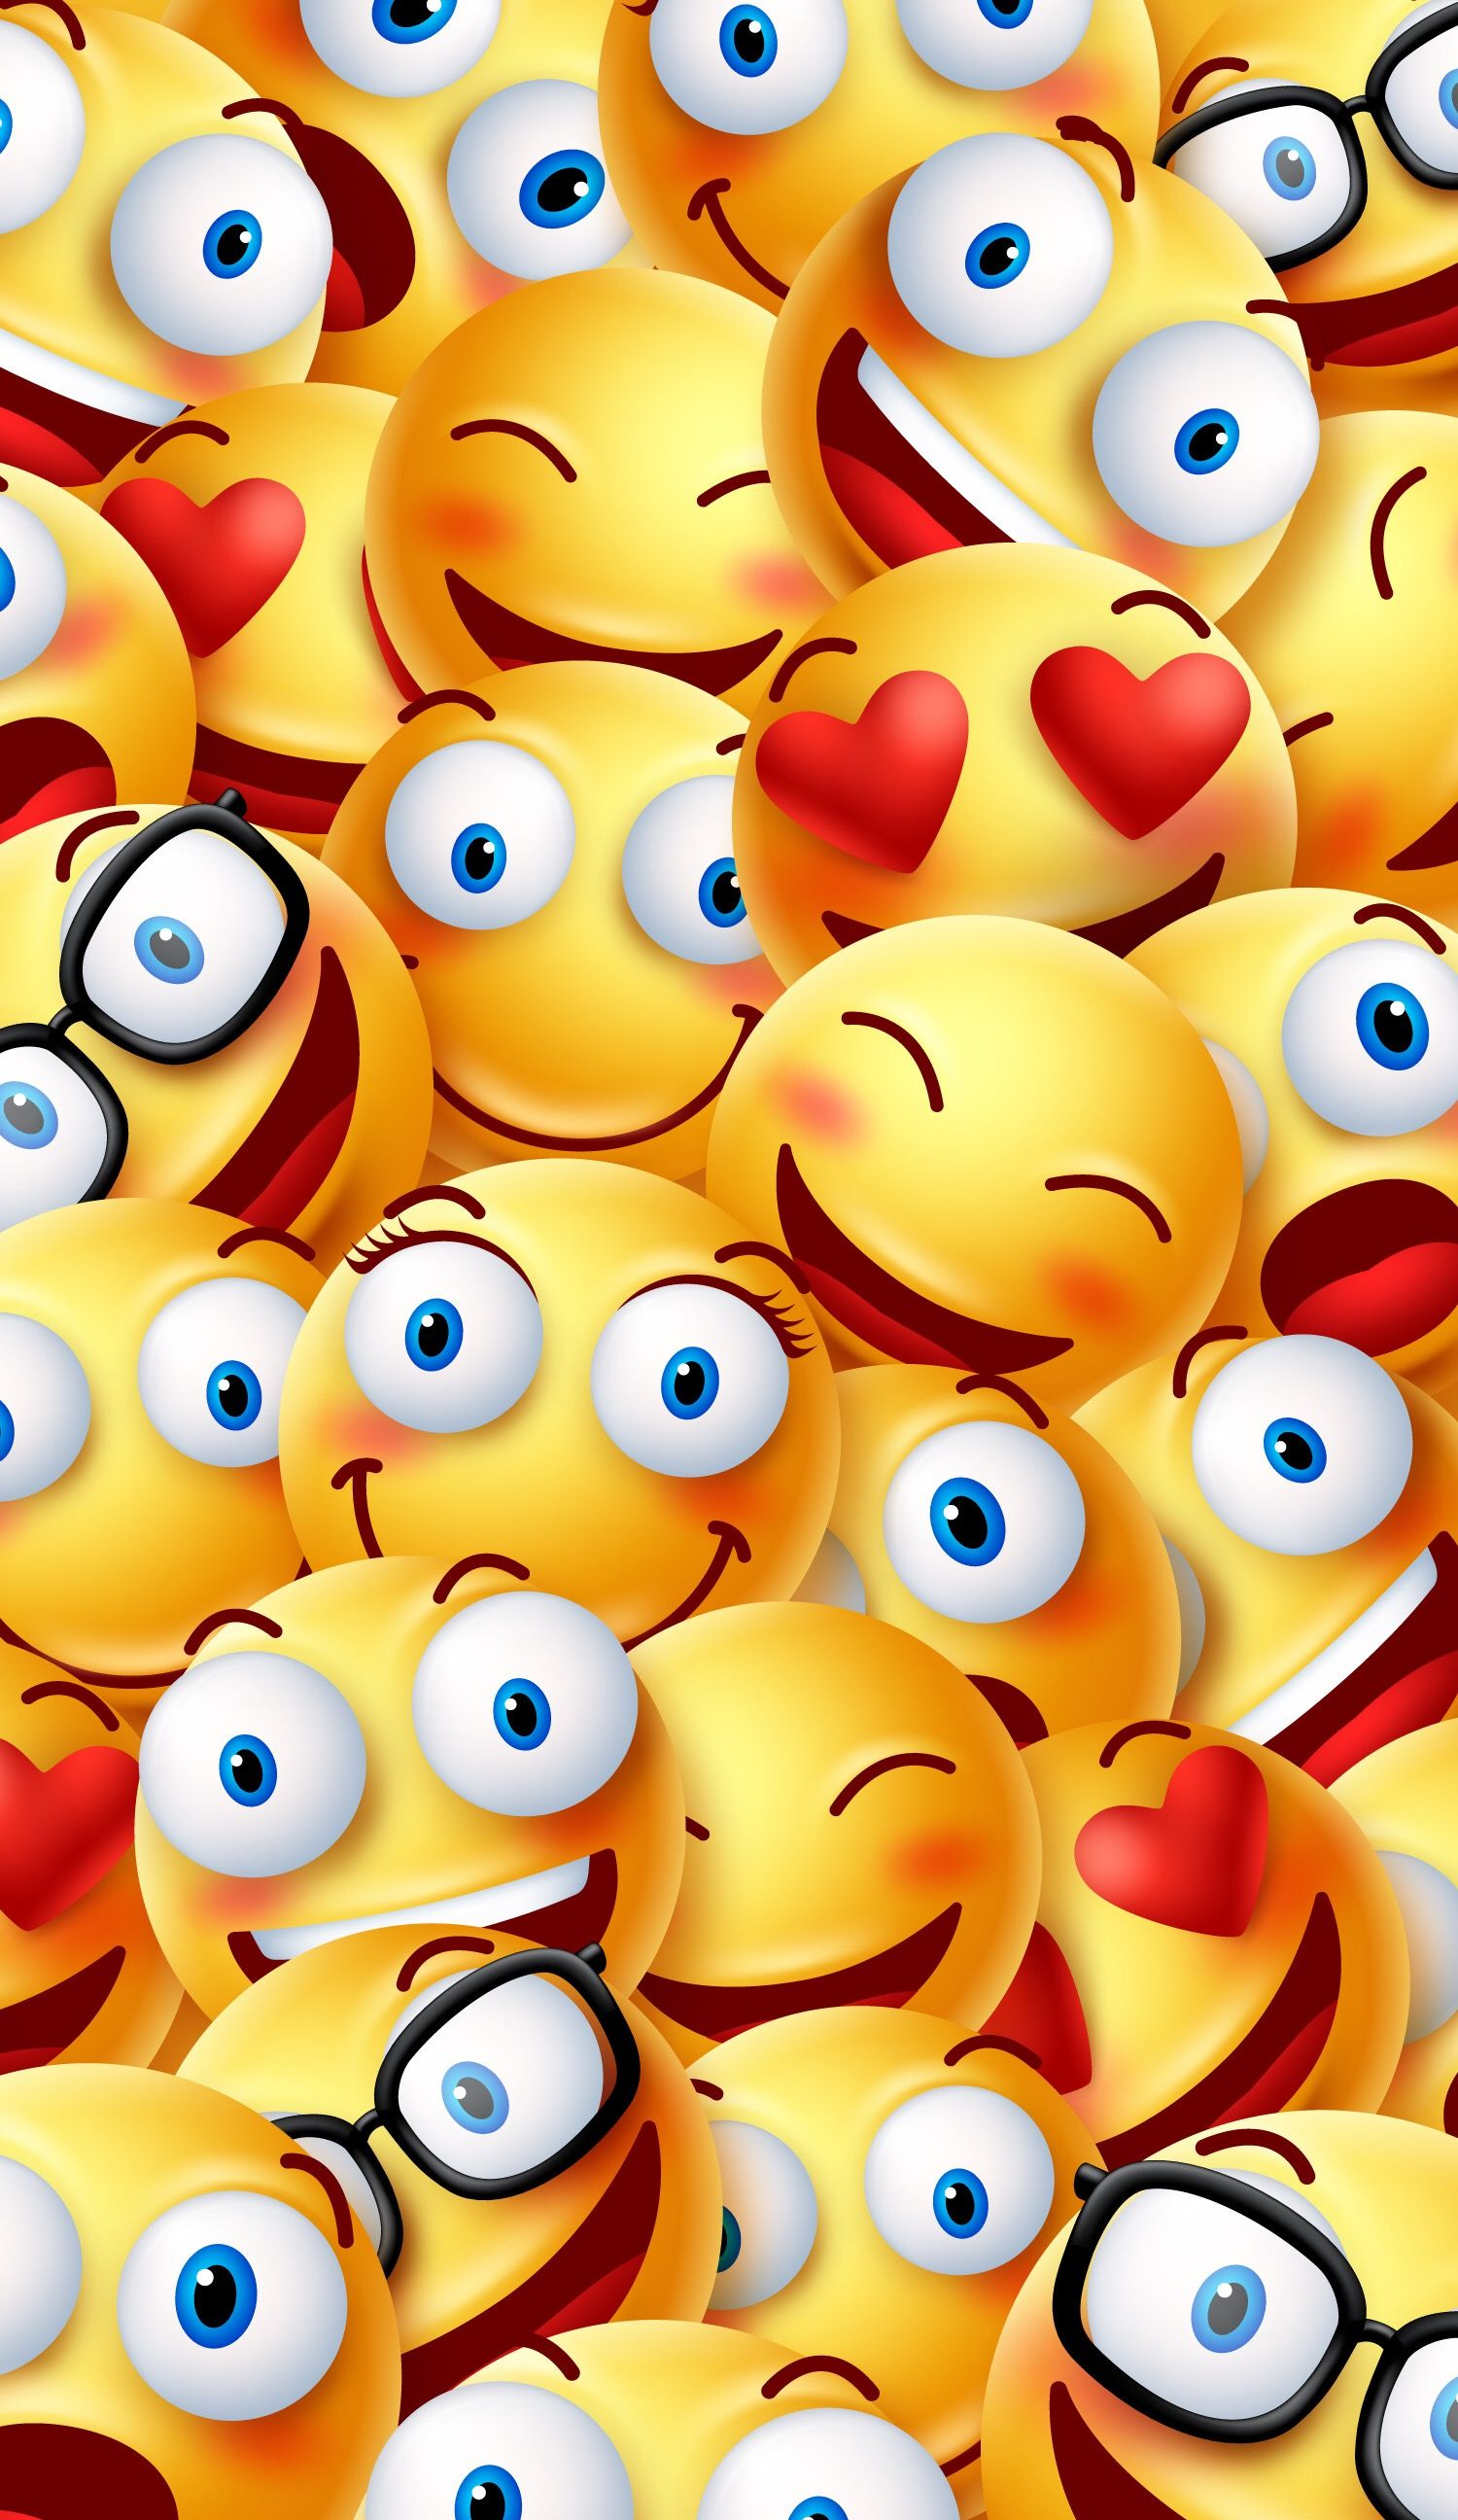 Emoji Wallpaper Backgrounds Phone Funny Lockscreen Wallpapers Iphone Holiday Emoticon